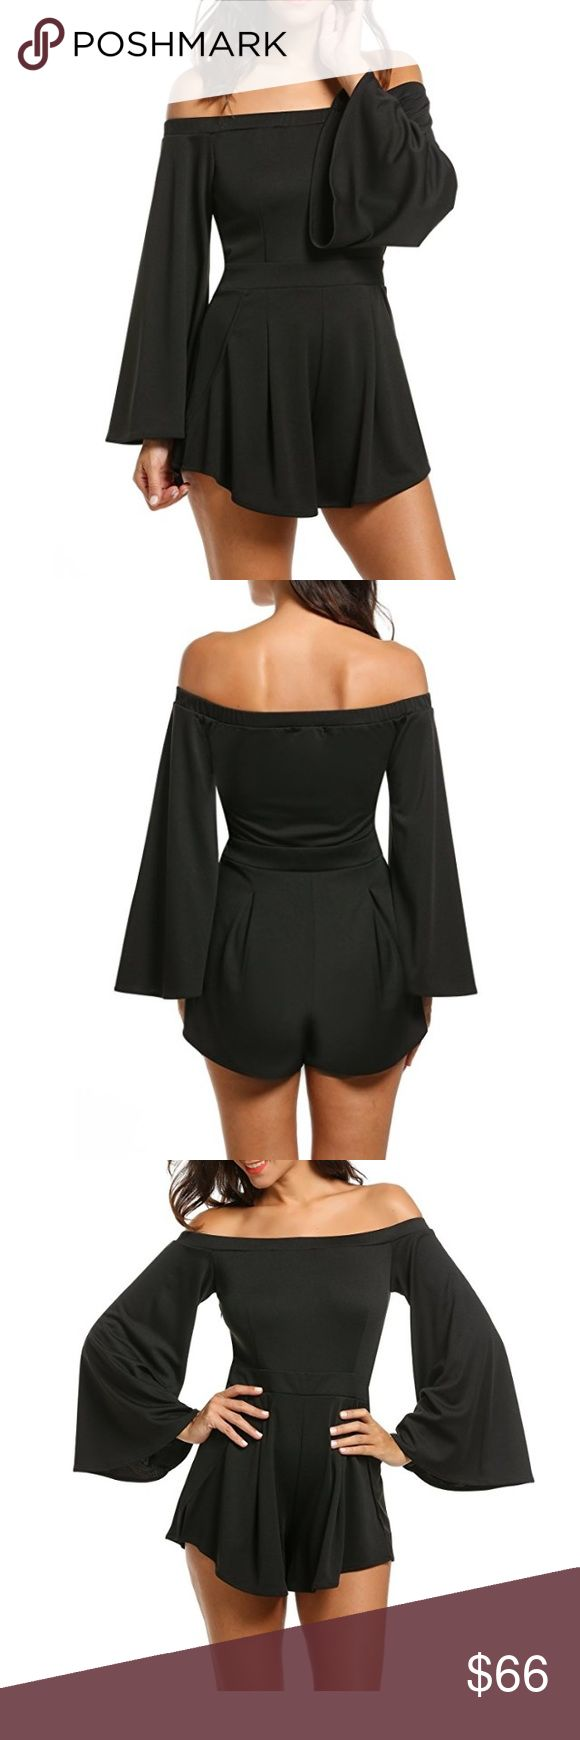 Off Shoulder Bell Sleeve Fit n Flare Black Romper Boho bell sleeves, a flirty off shoulder style, and figure flattering waisted, fit and flare look. This romantic romper is chic, comfortable, and easy to wear. Go casual with sandals and a floppy hat or dress it up for date night!  Available in classic black and blush pink.   ❌ Sorry, no trades.   fairlygirly fairlygirly Pants Jumpsuits & Rompers